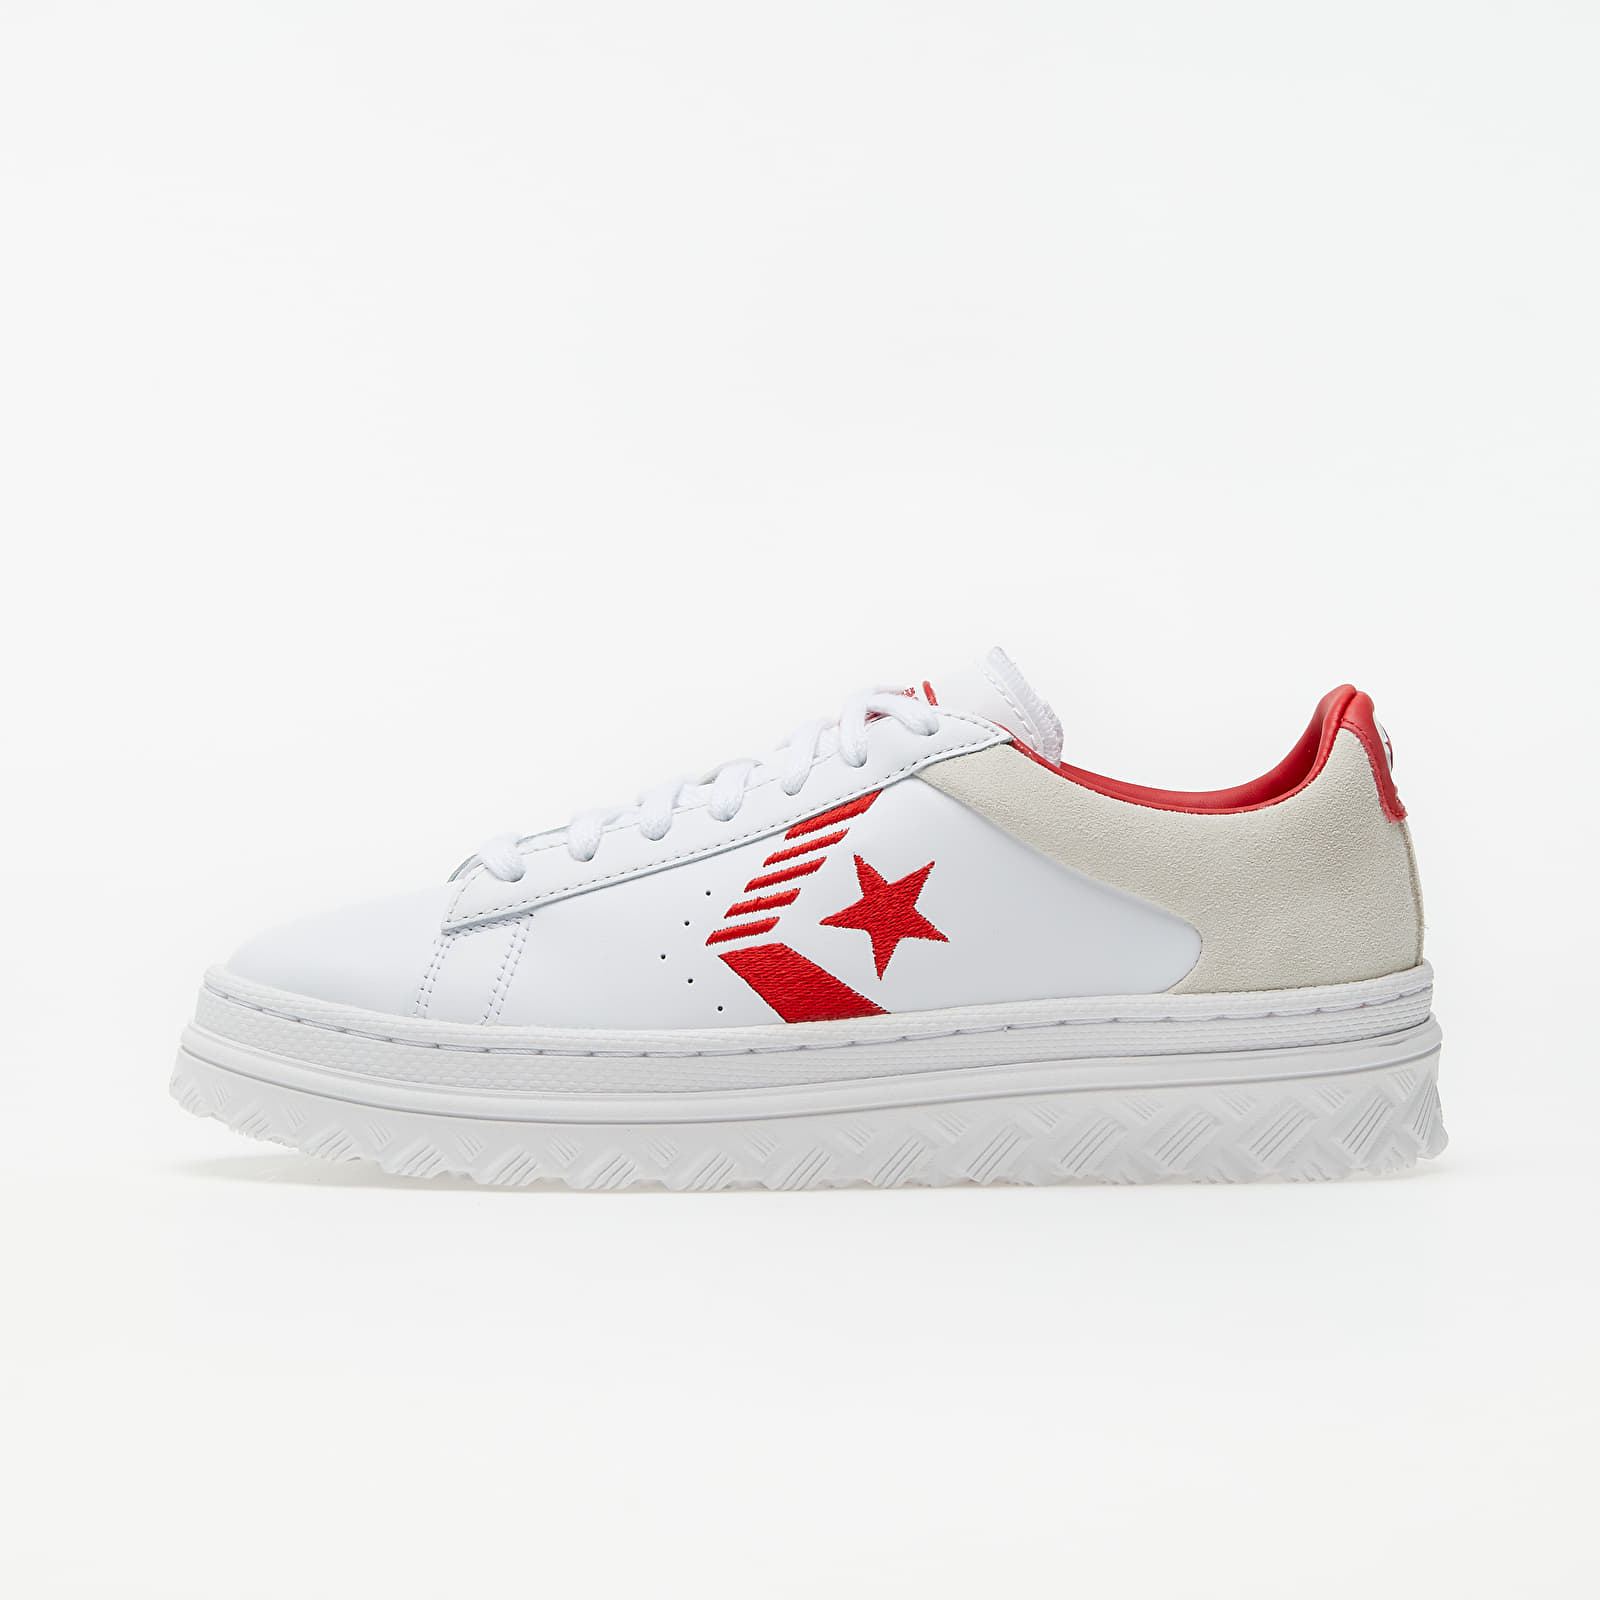 Converse Pro Leather X2 White/ Egret/ University Red 168691C